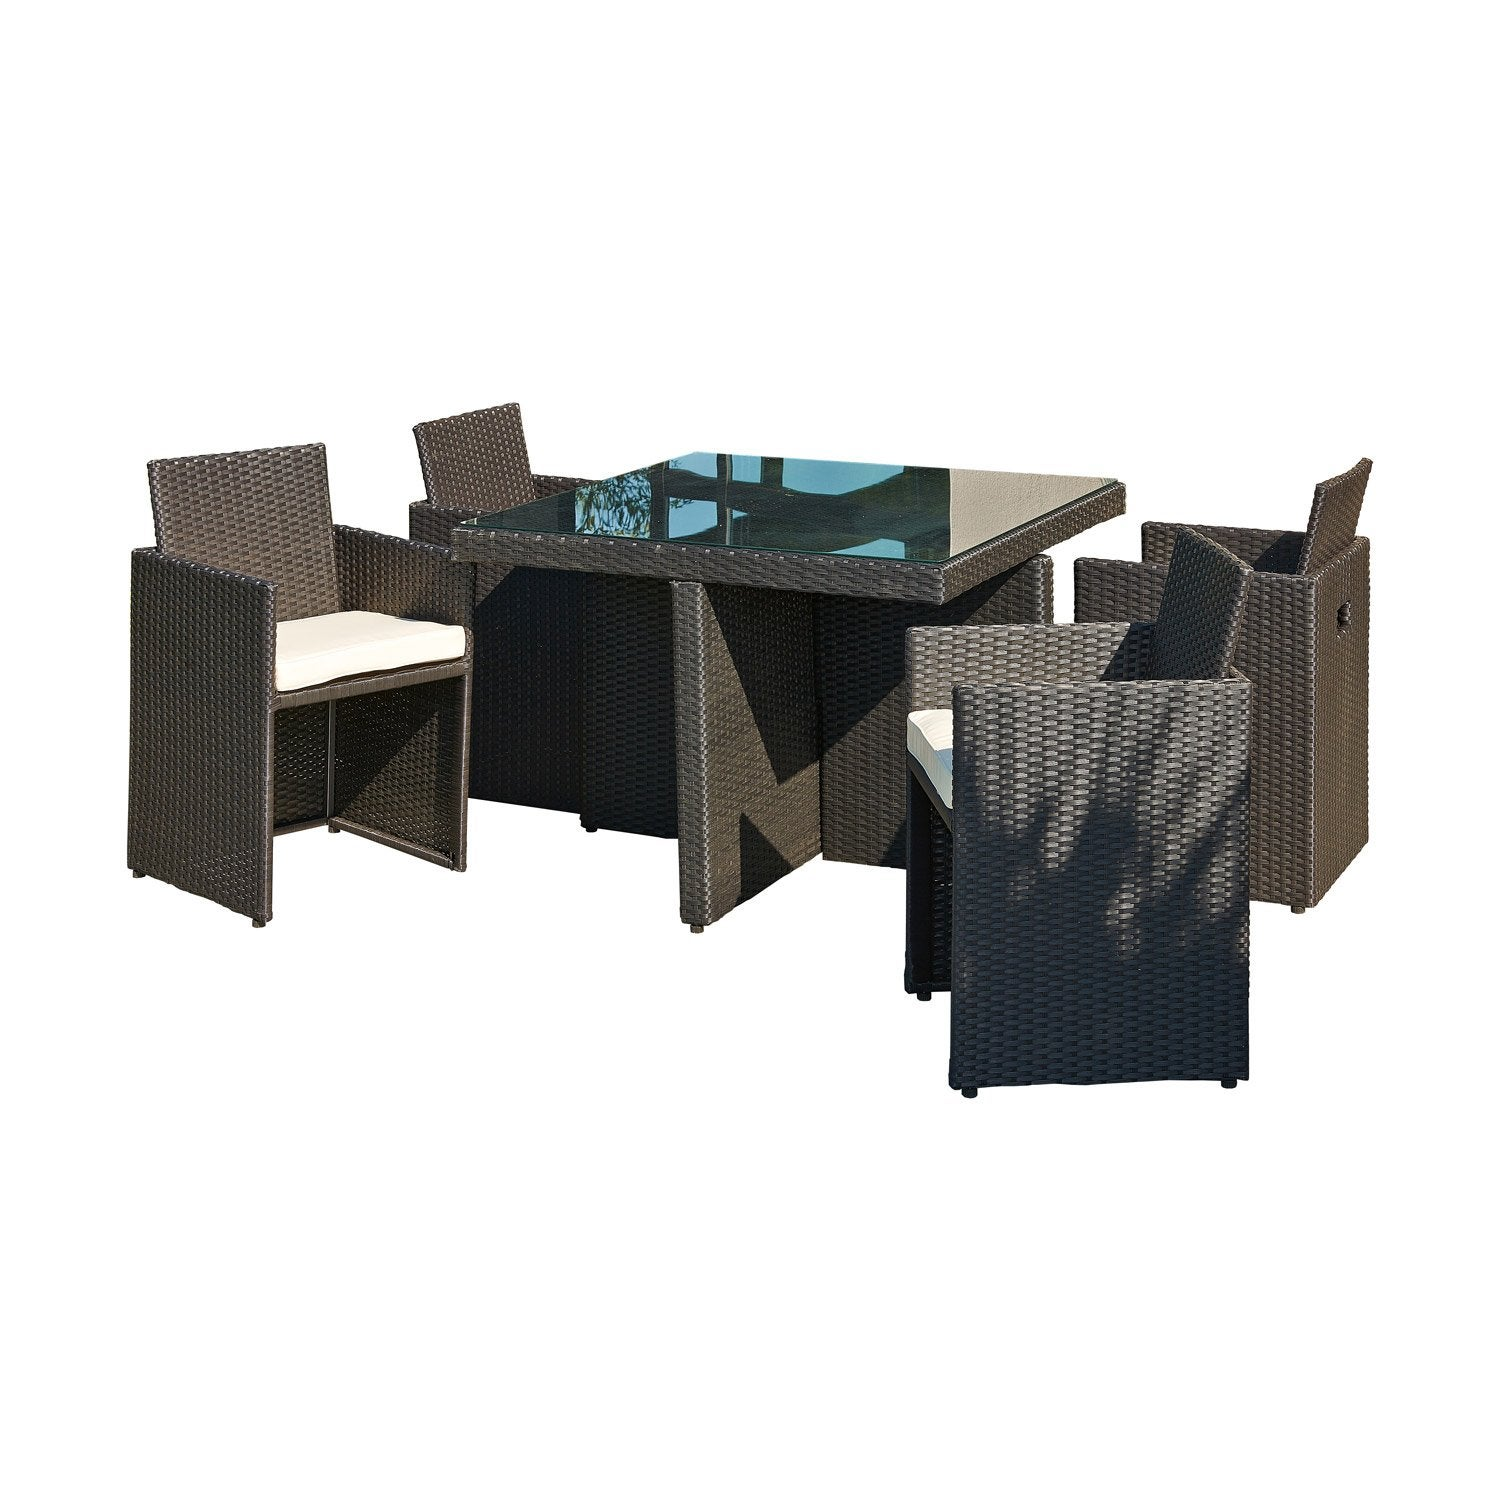 salon de jardin encastrable r sine inject e noir 4 personnes leroy merlin. Black Bedroom Furniture Sets. Home Design Ideas